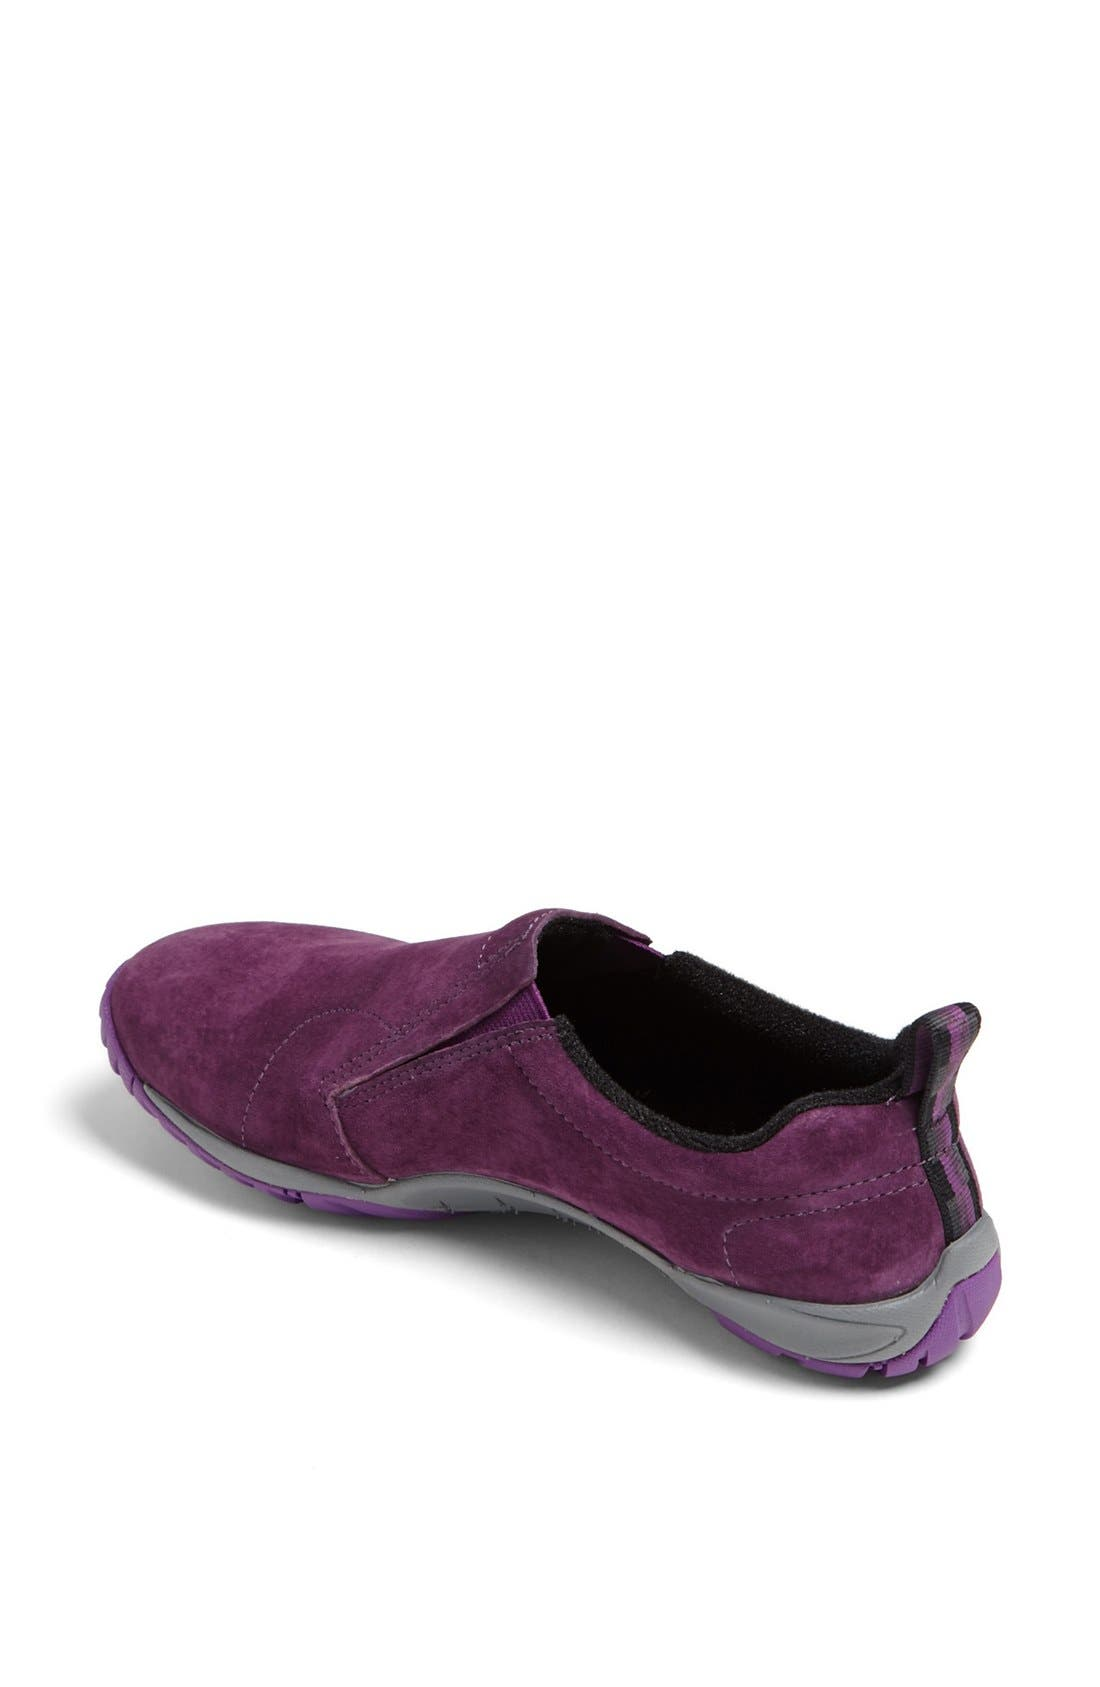 Alternate Image 2  - Merrell 'Jungle Glove' Sneaker (Women)